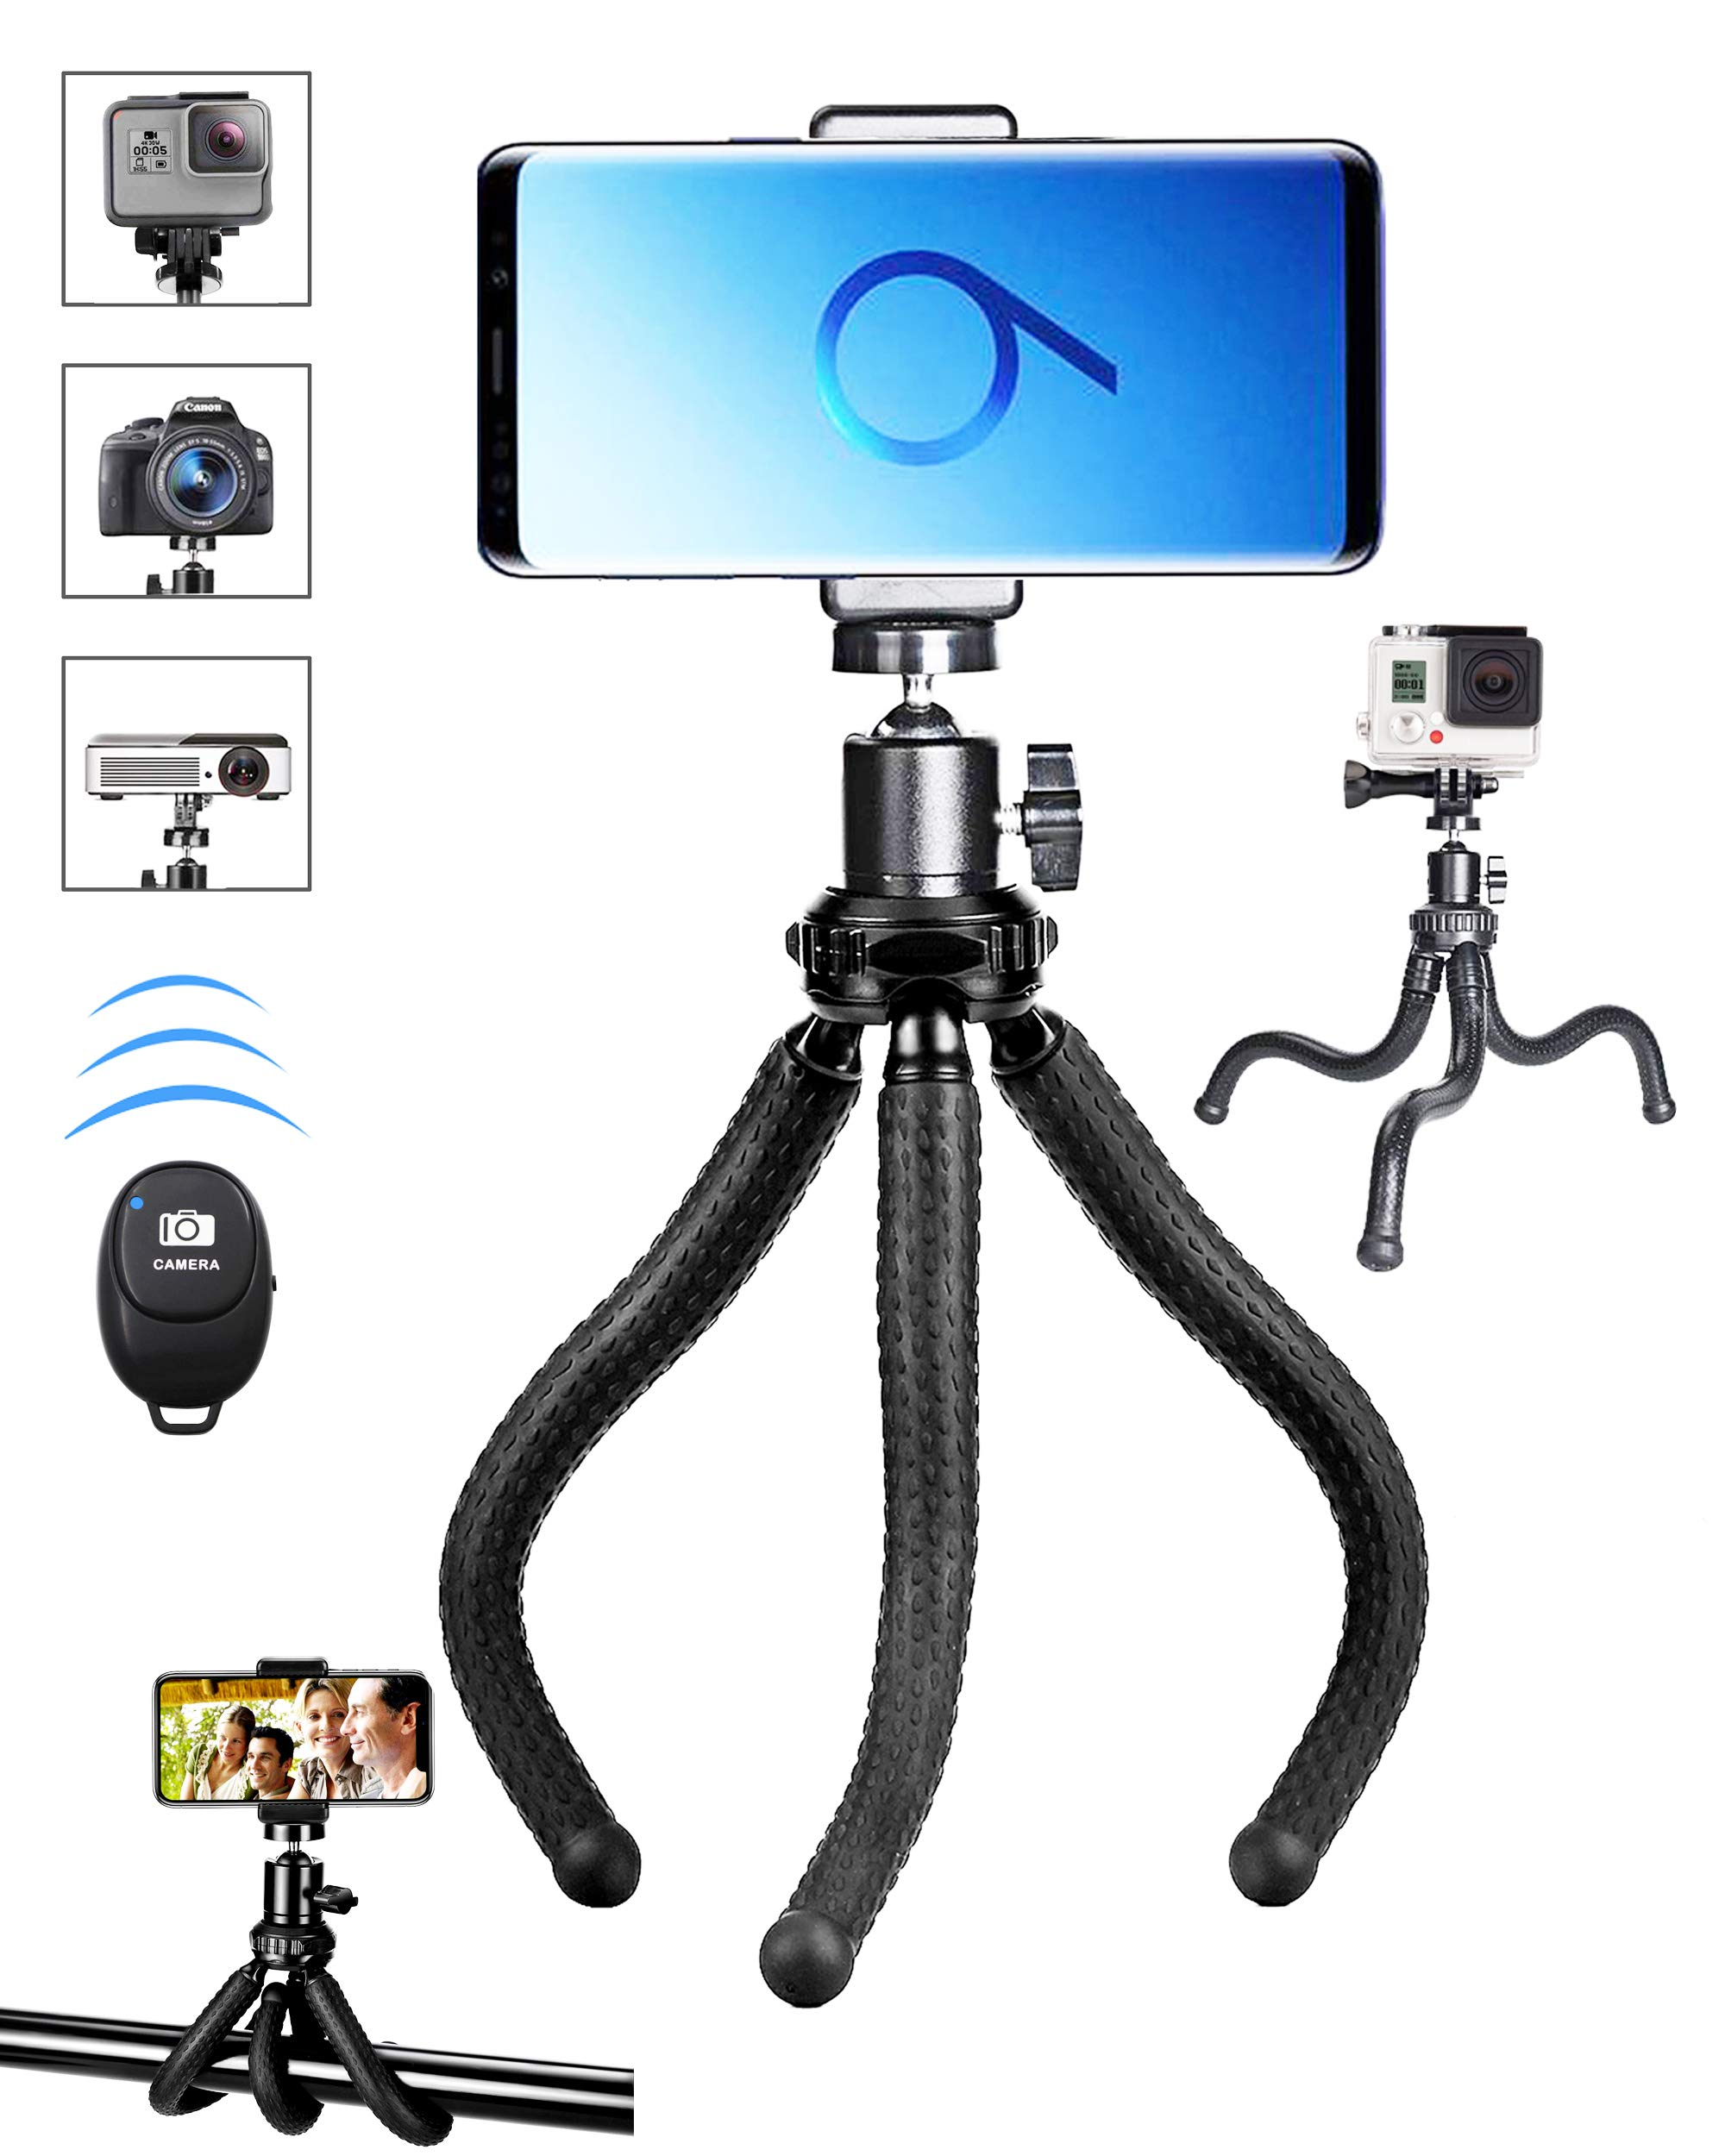 Phone Tripod,Premium Flexible Phone Tripod and Phone Stand with Wireless Remote Shutter,Compatible with iPhone Xs Max Xr 8 7 6 6s Plus, Android, Samsung Galaxy S10 S9,Gopro and More by BZE